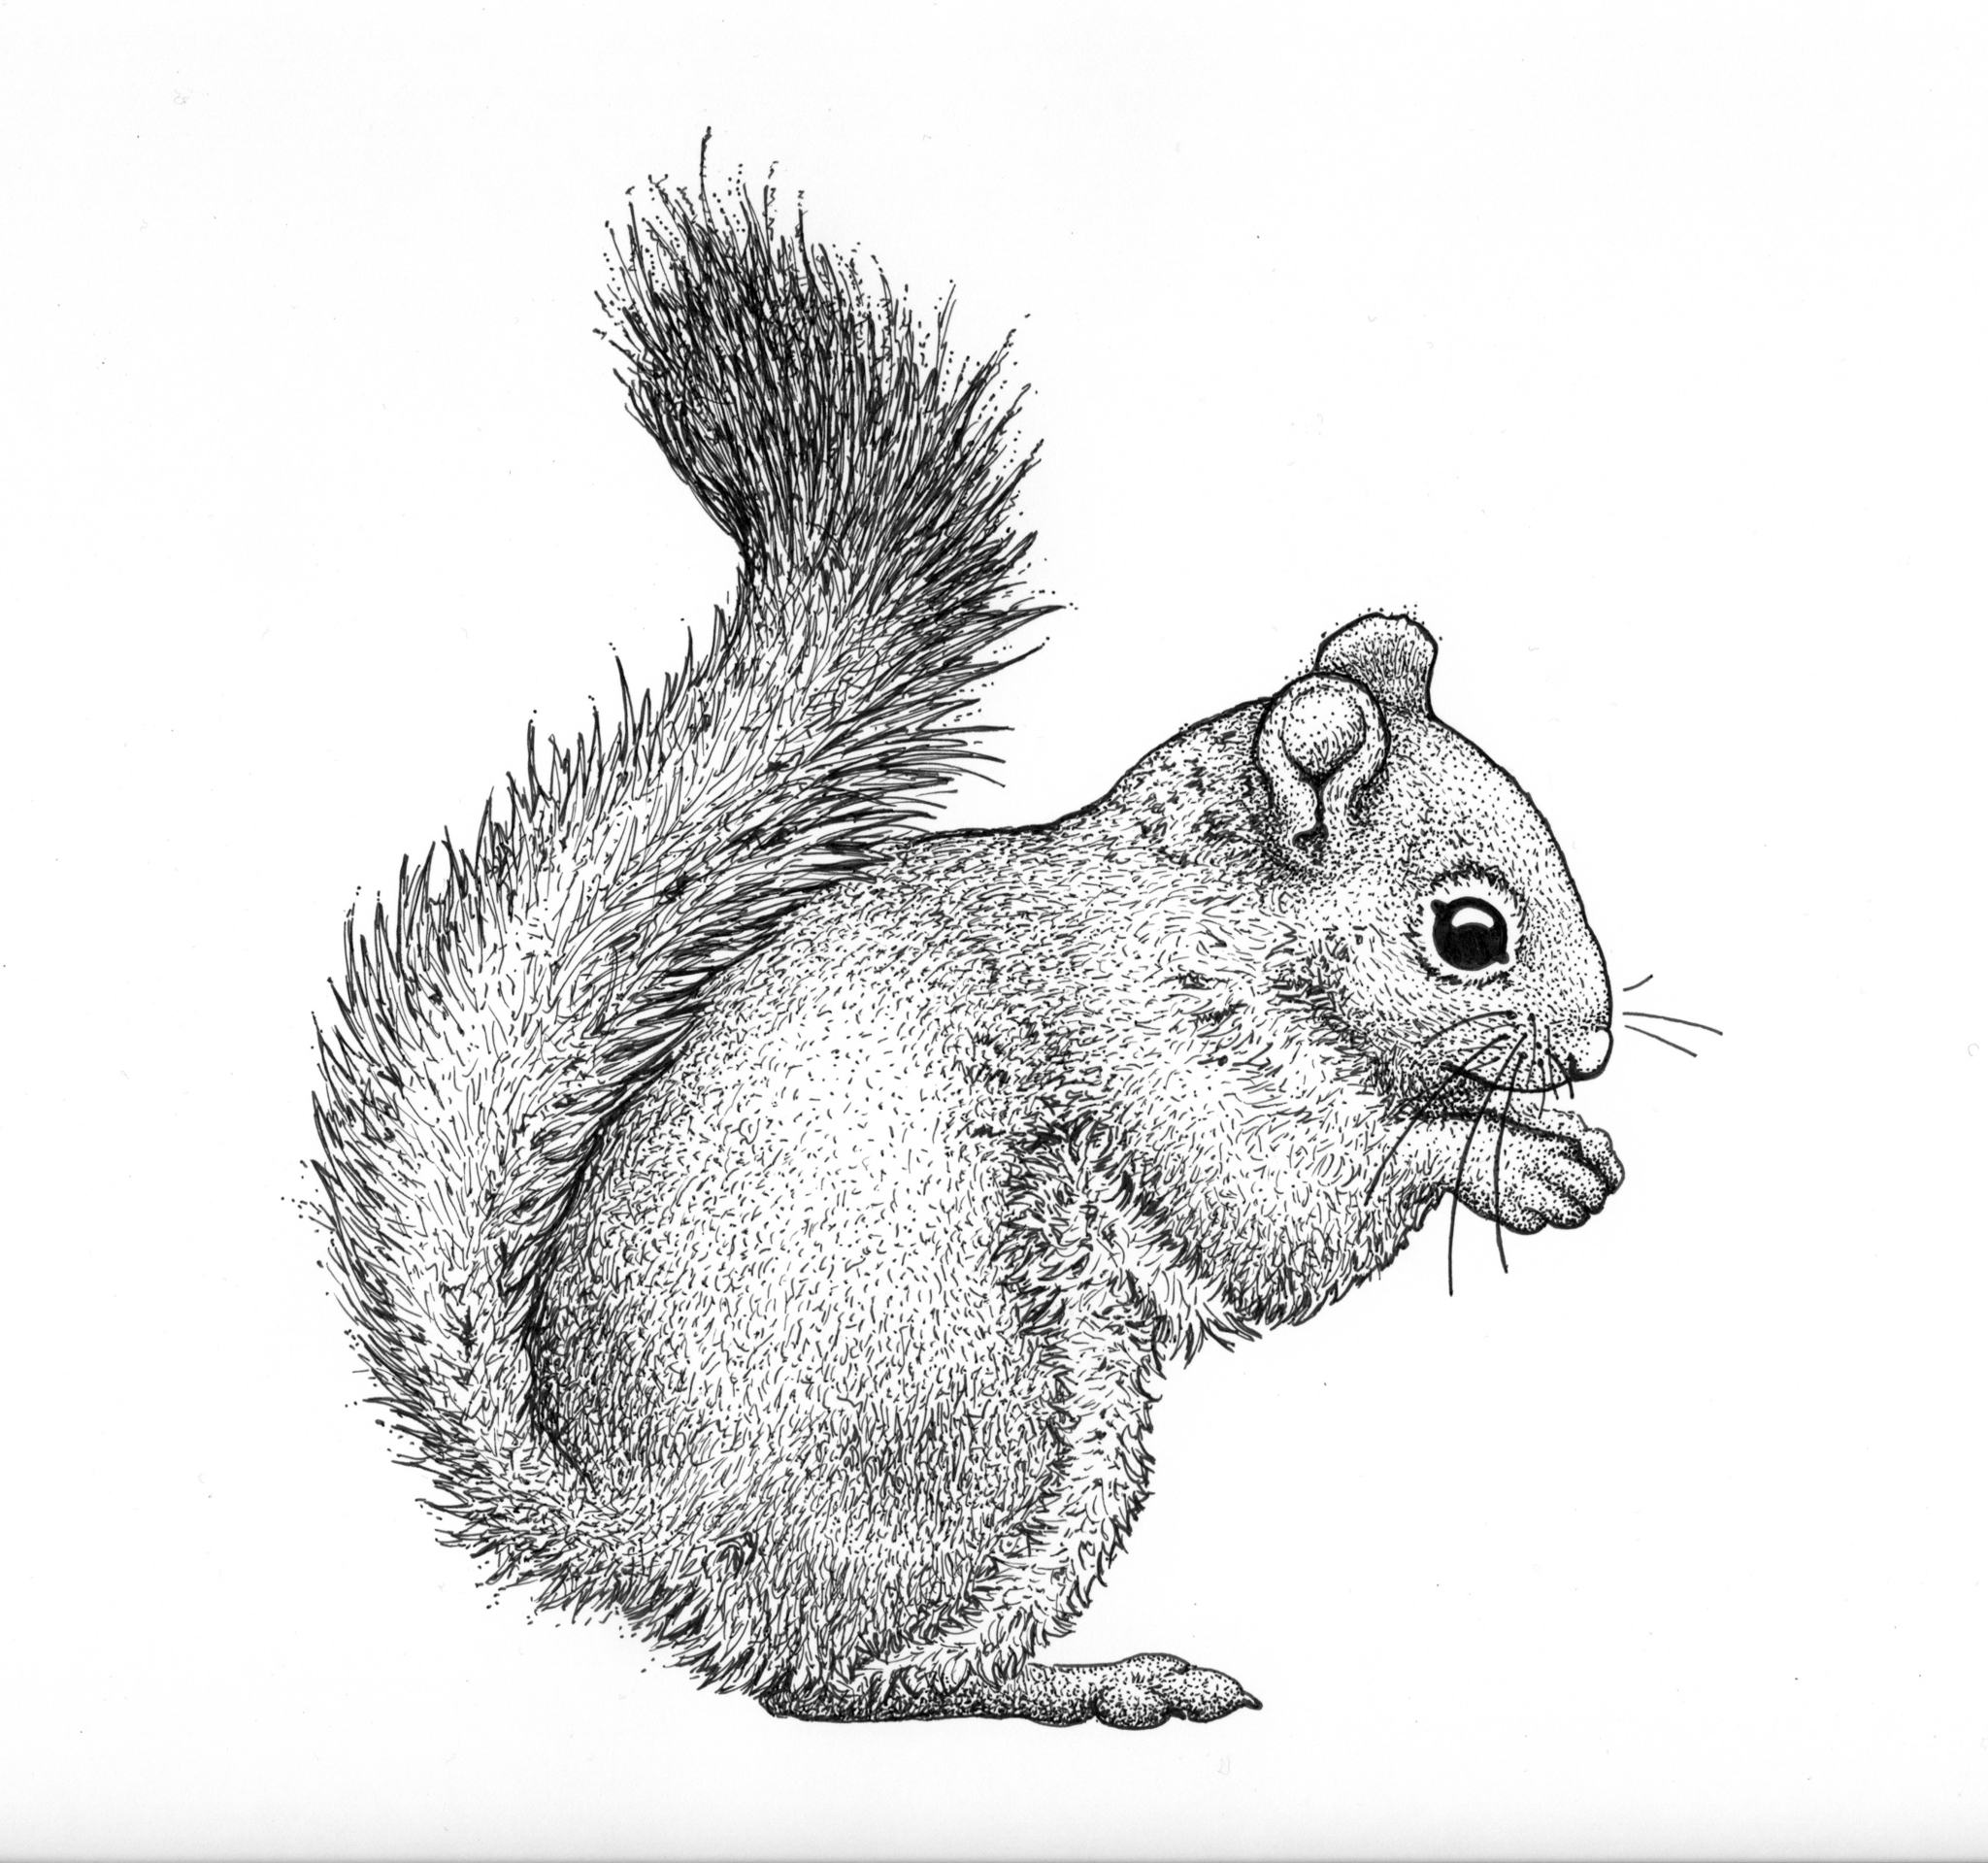 Red squirrel drawing, squirrel illustration, mammal drawing, scientific drawing